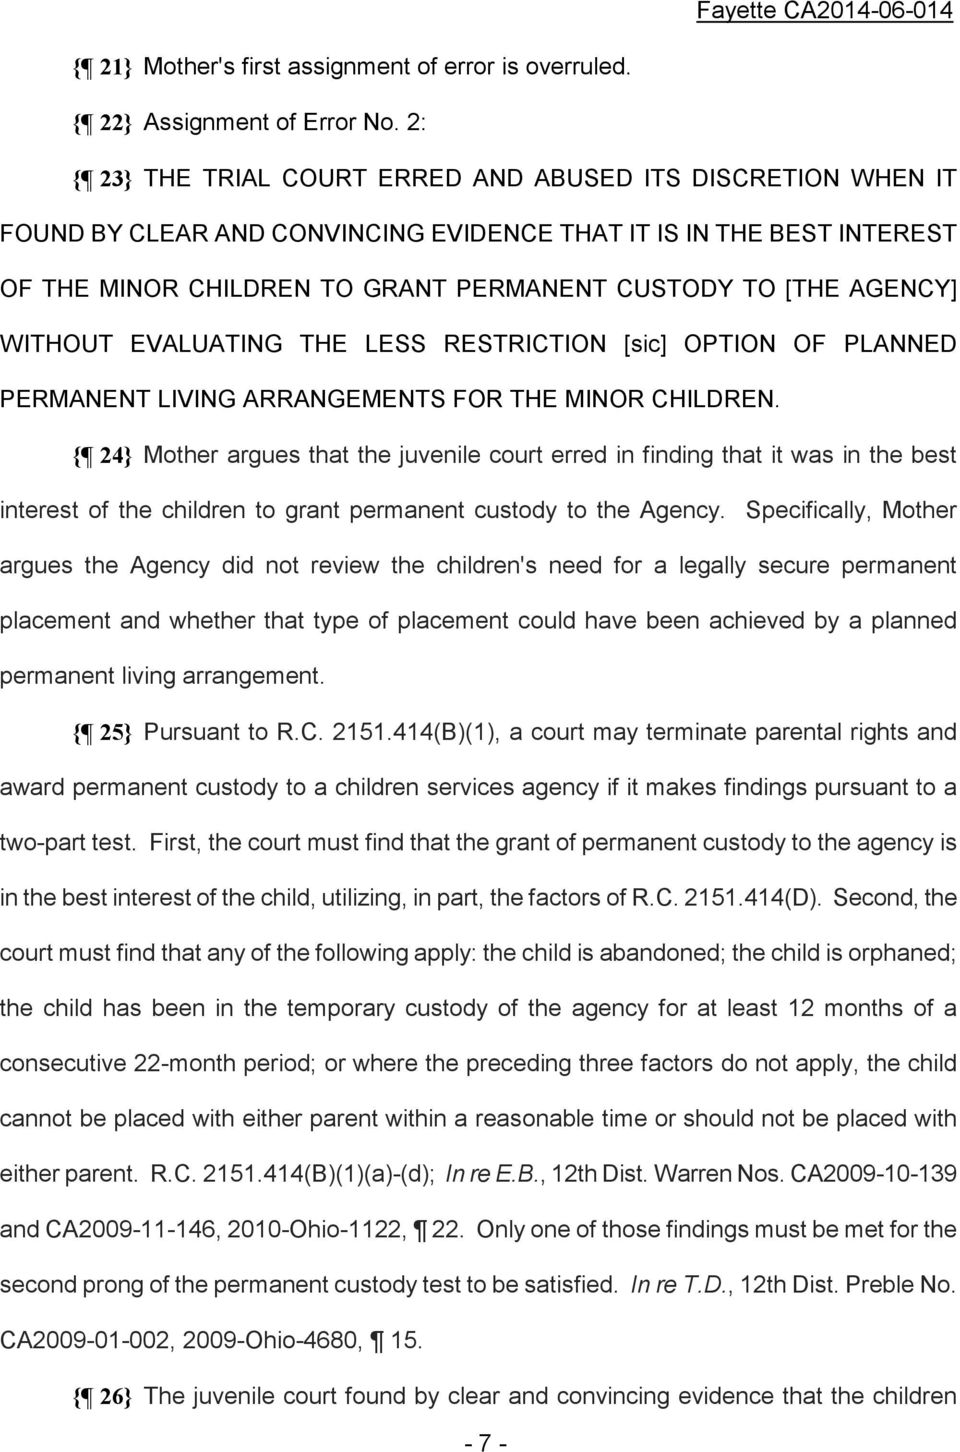 AGENCY] WITHOUT EVALUATING THE LESS RESTRICTION [sic] OPTION OF PLANNED PERMANENT LIVING ARRANGEMENTS FOR THE MINOR CHILDREN.